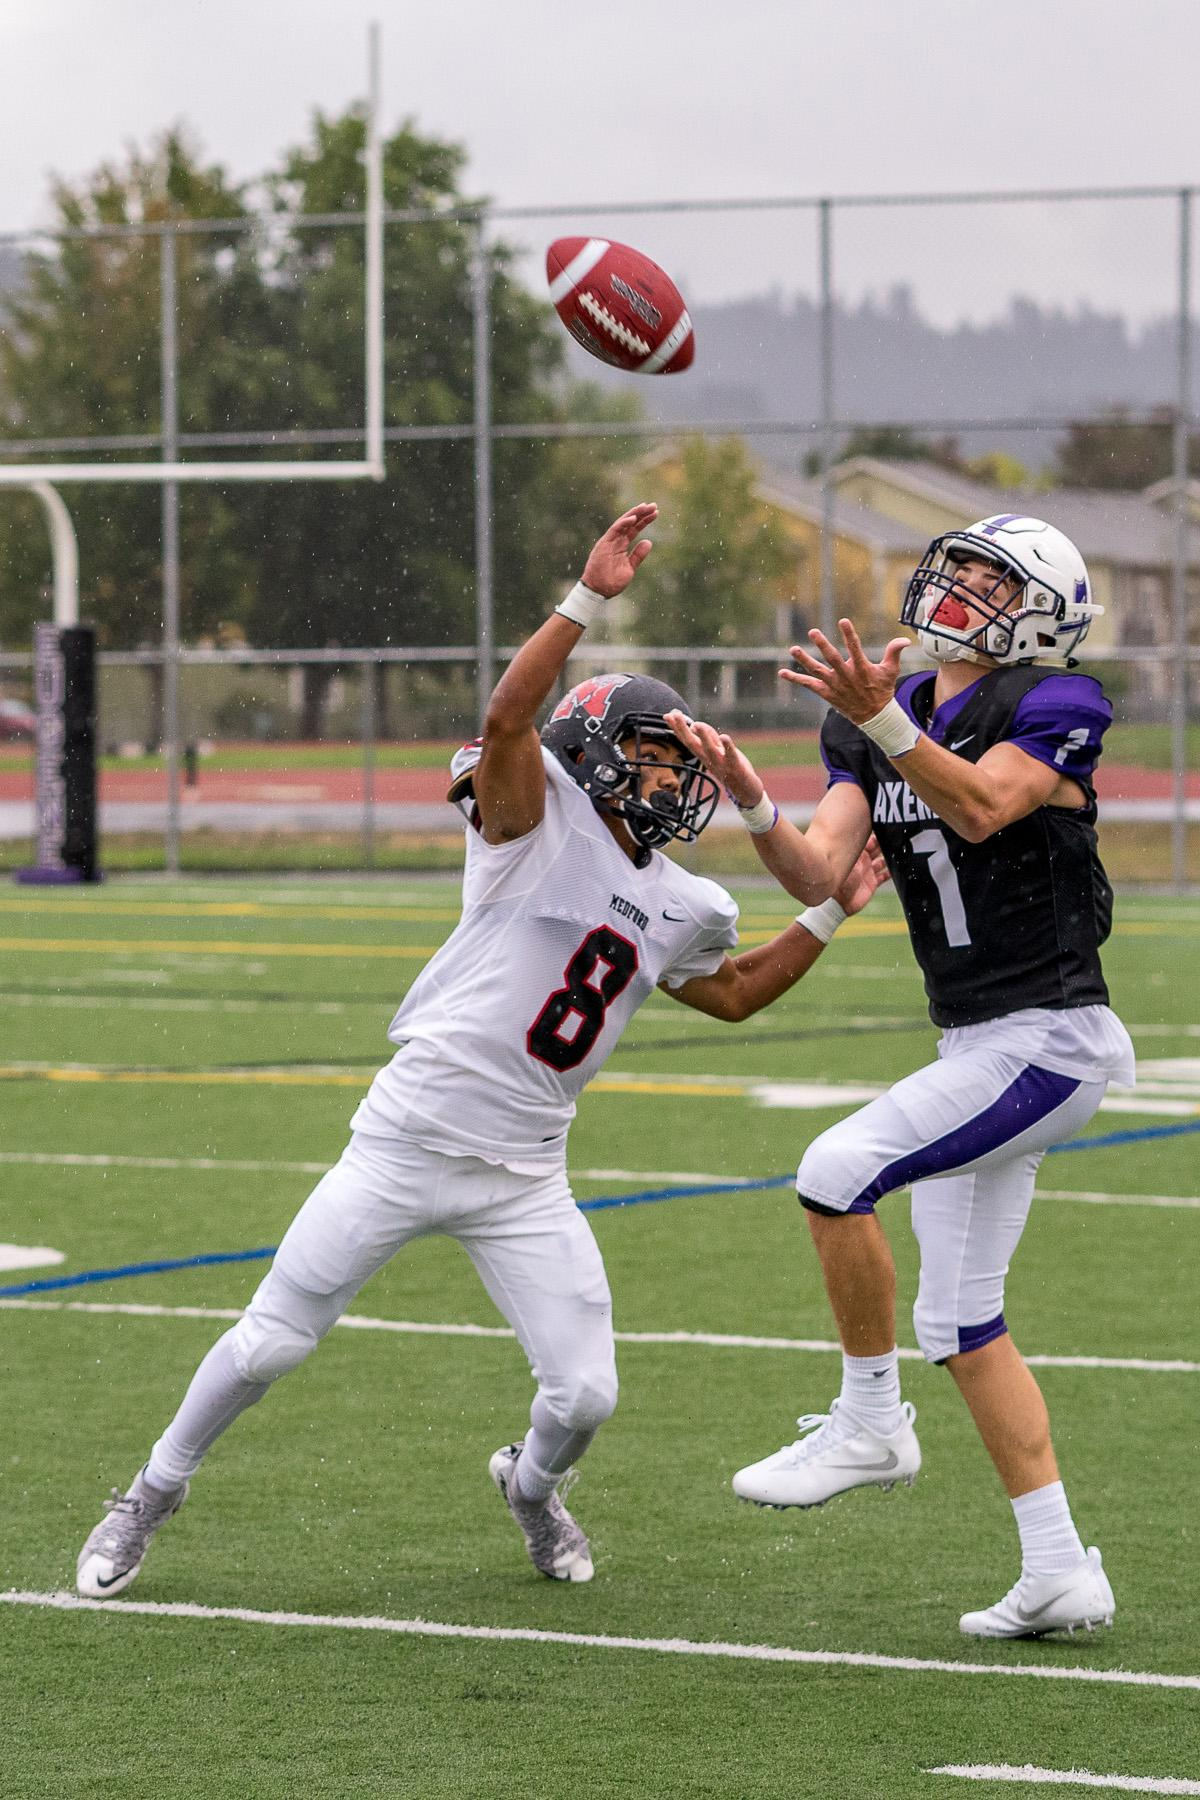 South Eugene's Elliot James (#1) and North Medford's Vicente Borja (#8) compete for a reception. North Medford defeated South Eugene 27 – 8 on Monday afternoon at South Eugene High School. The game had been rescheduled due to unhealthy levels of smoke in the air caused by nearby forest fires. Photo by Kit MacAvoy, Oregon News Lab